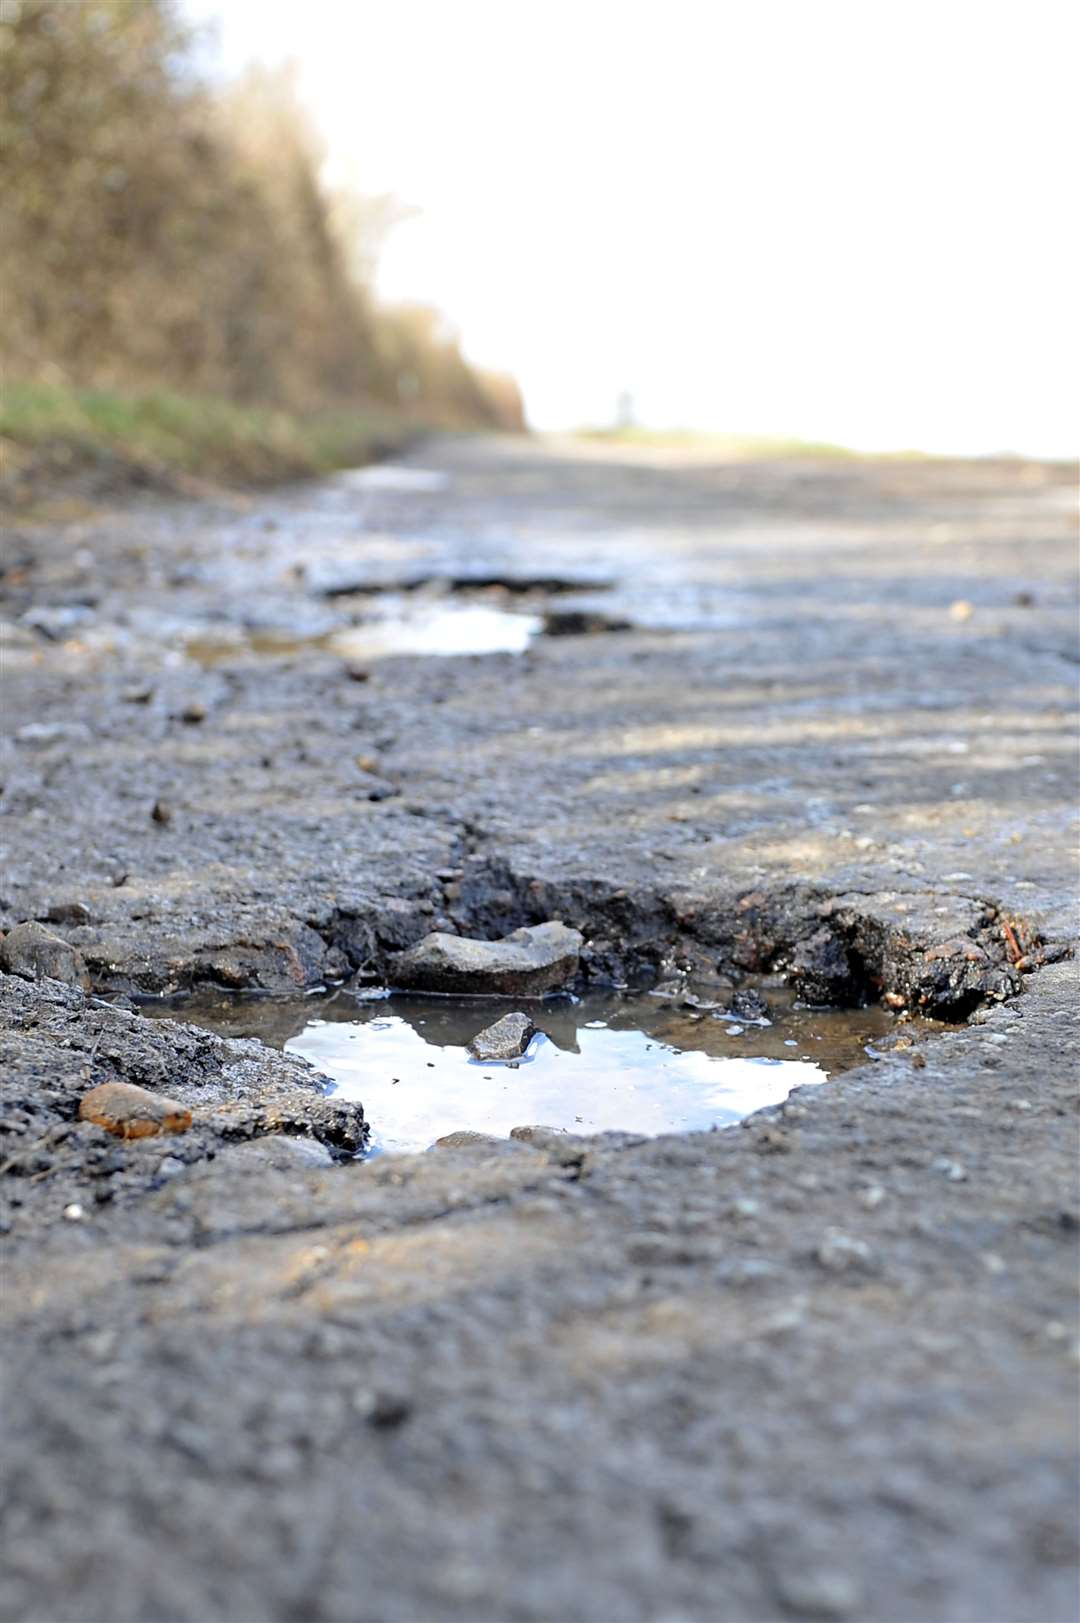 A report by the Asphalt Industry Alliance suggested it would cost £10 billion over a decade to bring all roads up to scratch